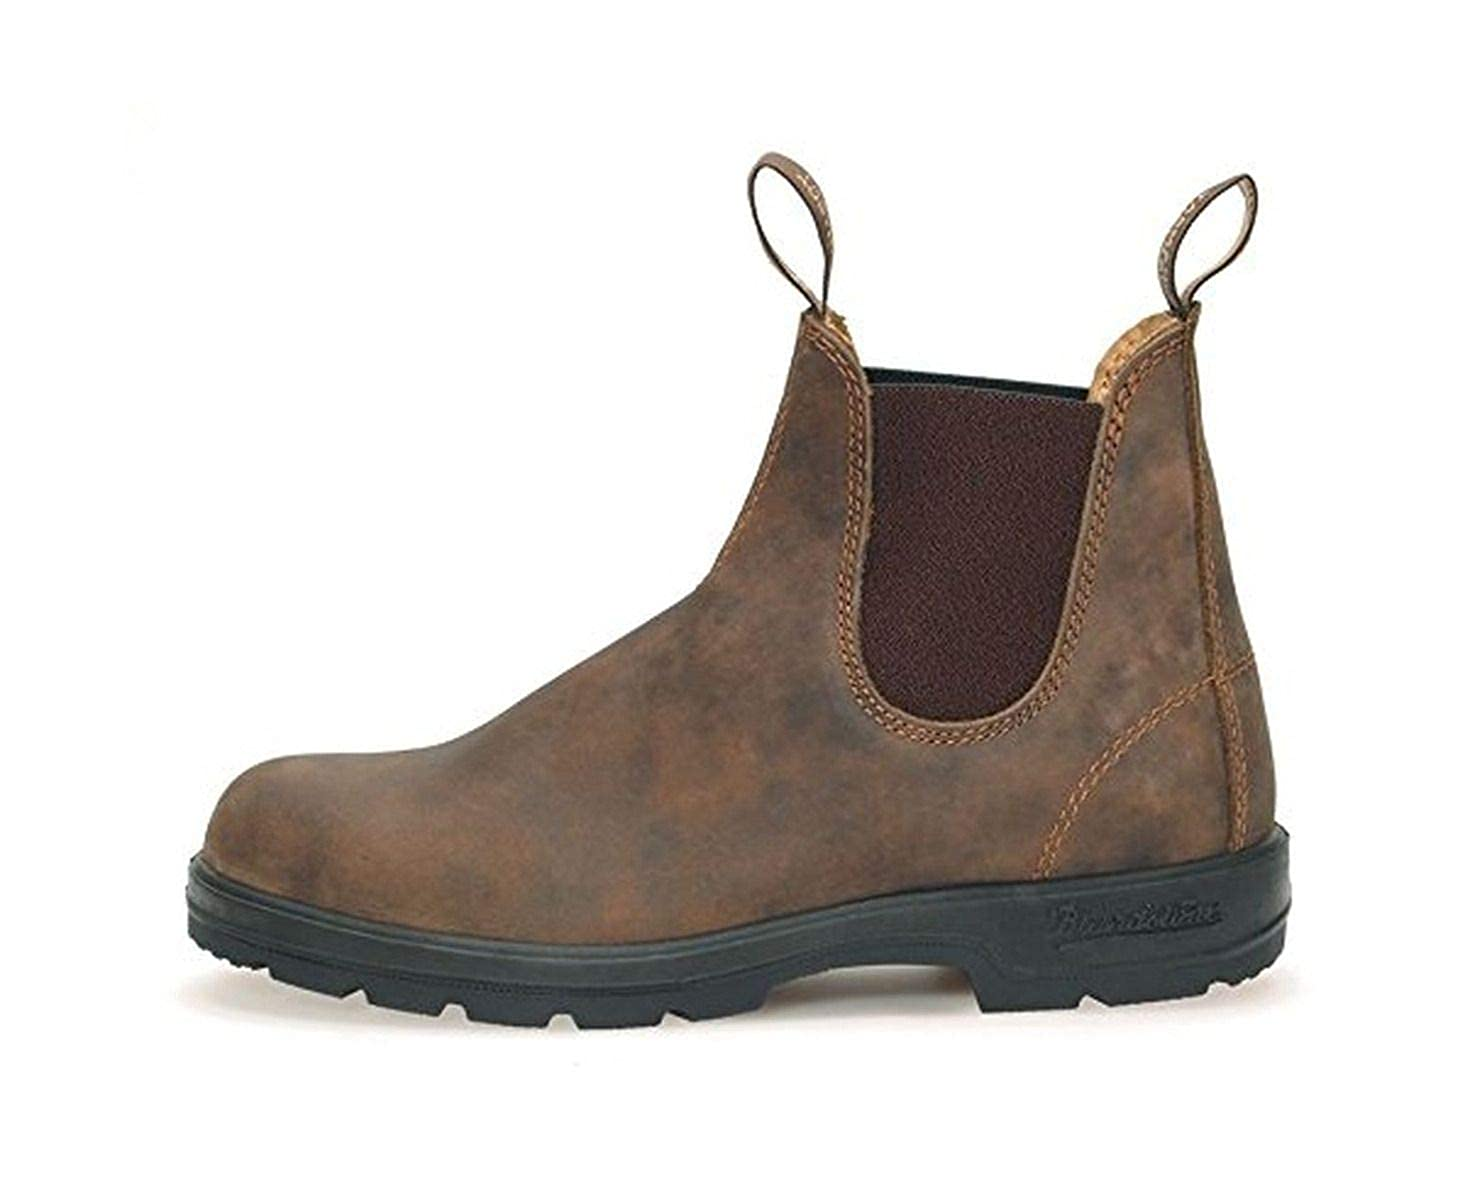 c254009daec2 Blundstone Original Rustic Brown Casual Leather Dress Boots 585 Series   Amazon.co.uk  Shoes   Bags